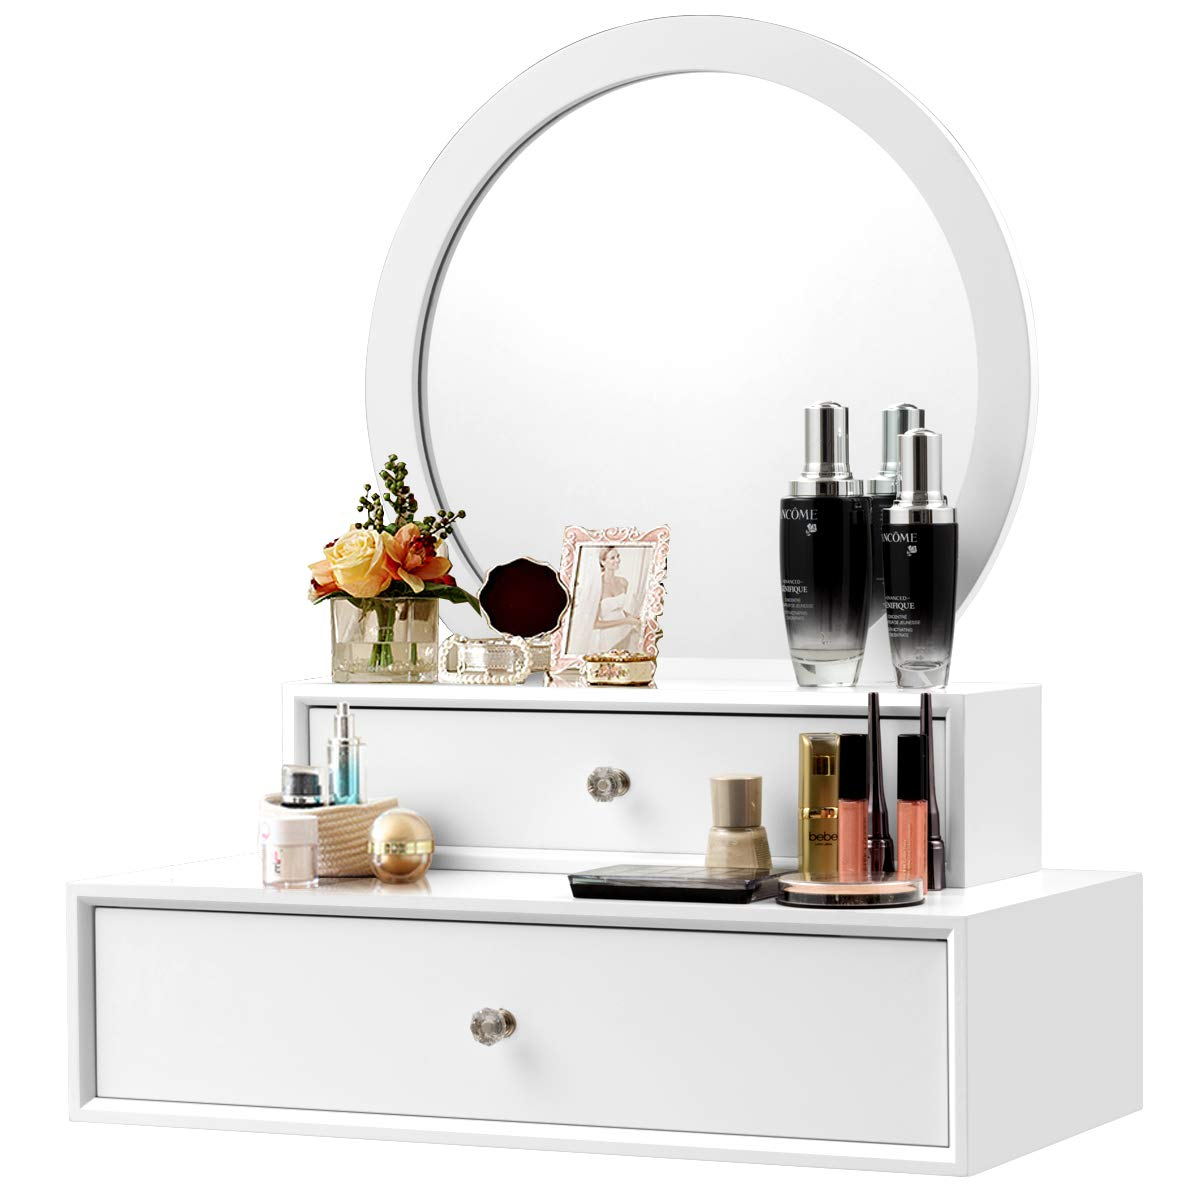 CHARMAID 2-in-1 Vanity Mirror with 2 Removable Drawers, Vanity Mirror Wall Mount or Placed on The Desk, Round Makeup Mirror DIY for Bedroom, Bathroom Vanity Over Sink, Modern Bathroom Vanity White